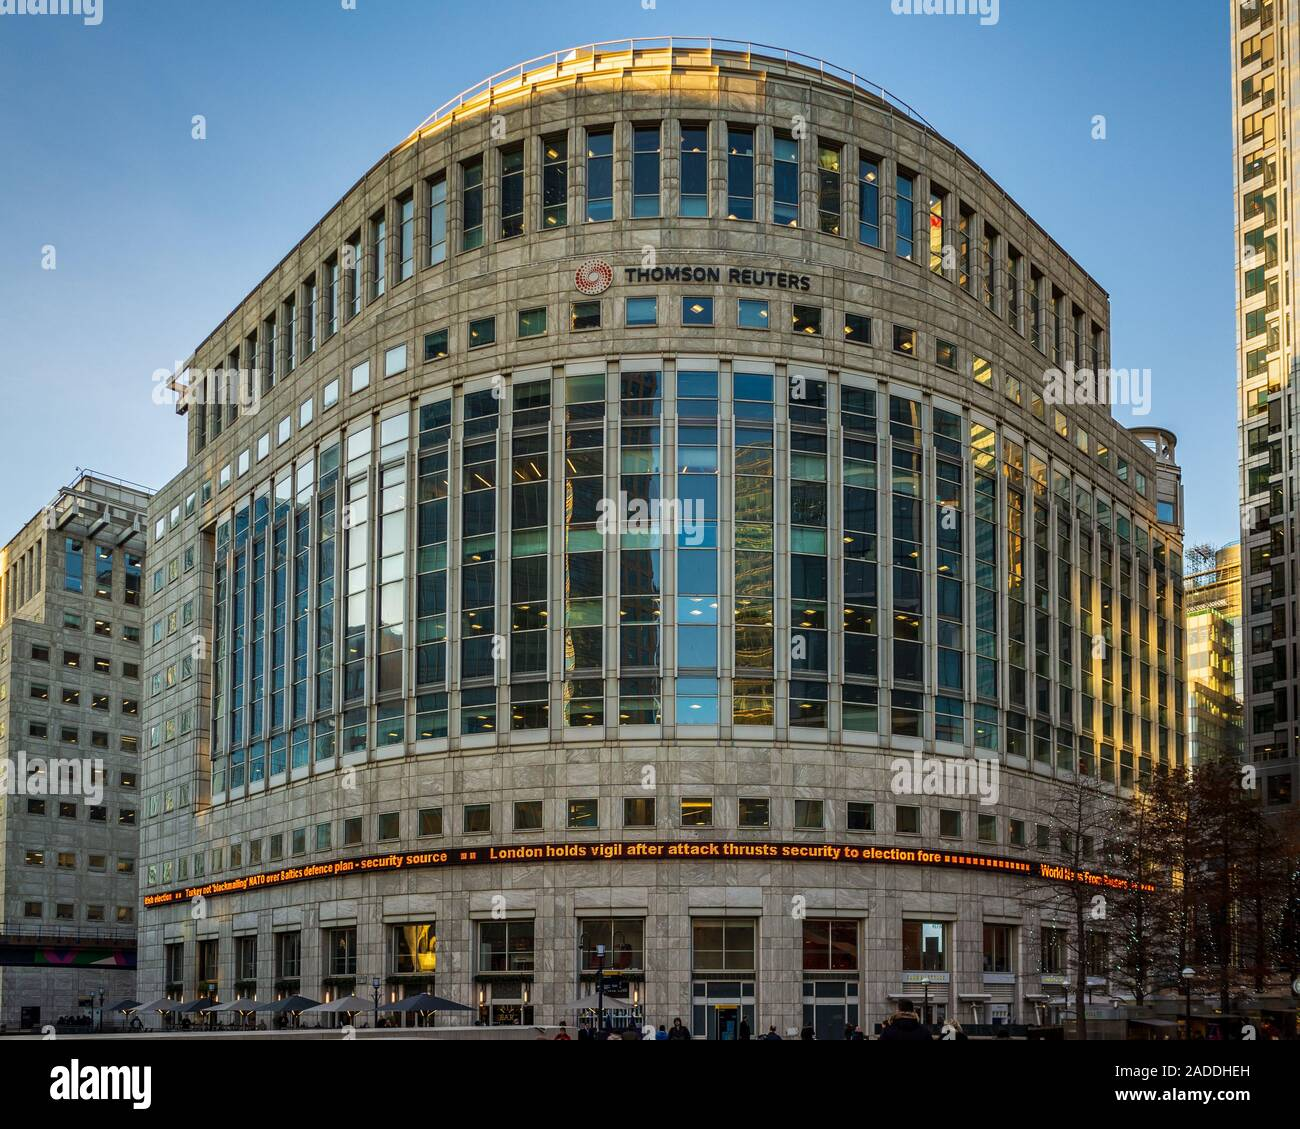 Thomson Reuters London Offices Building at Reuters Plaza Canary Wharf London Stock Photo